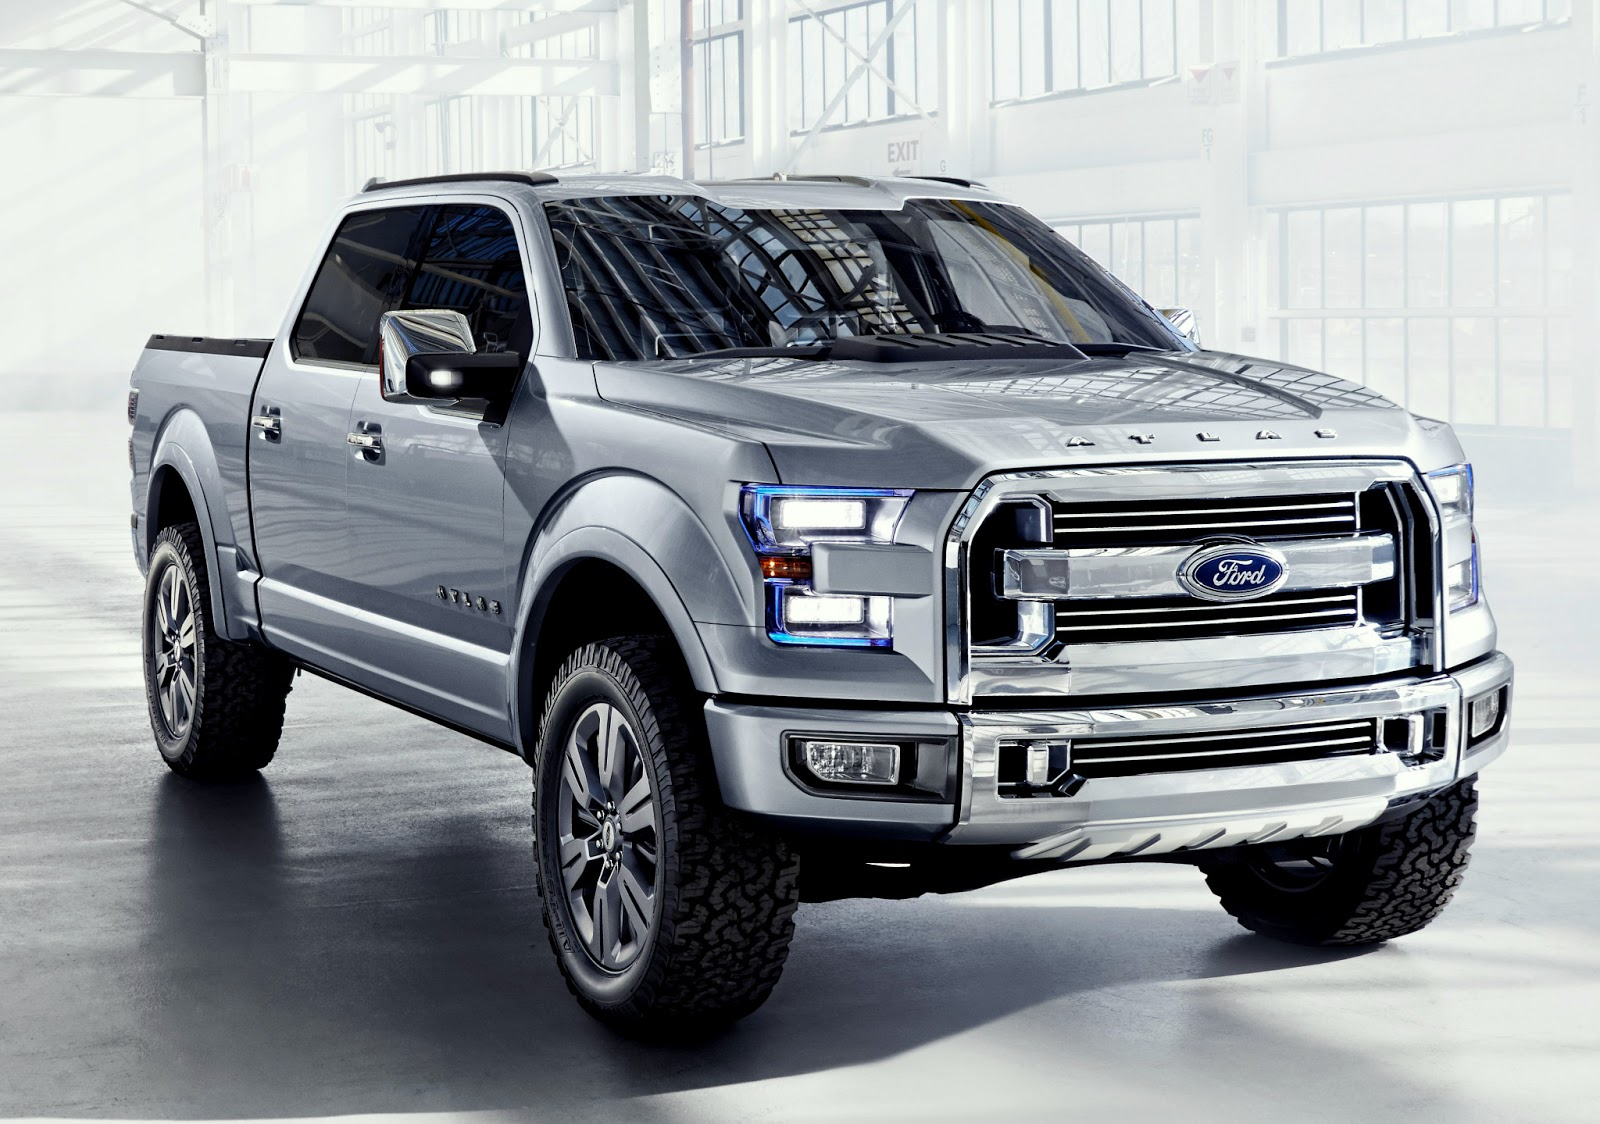 Ford Atlas Concept Previews The Future Of Next Built Tough Pickup